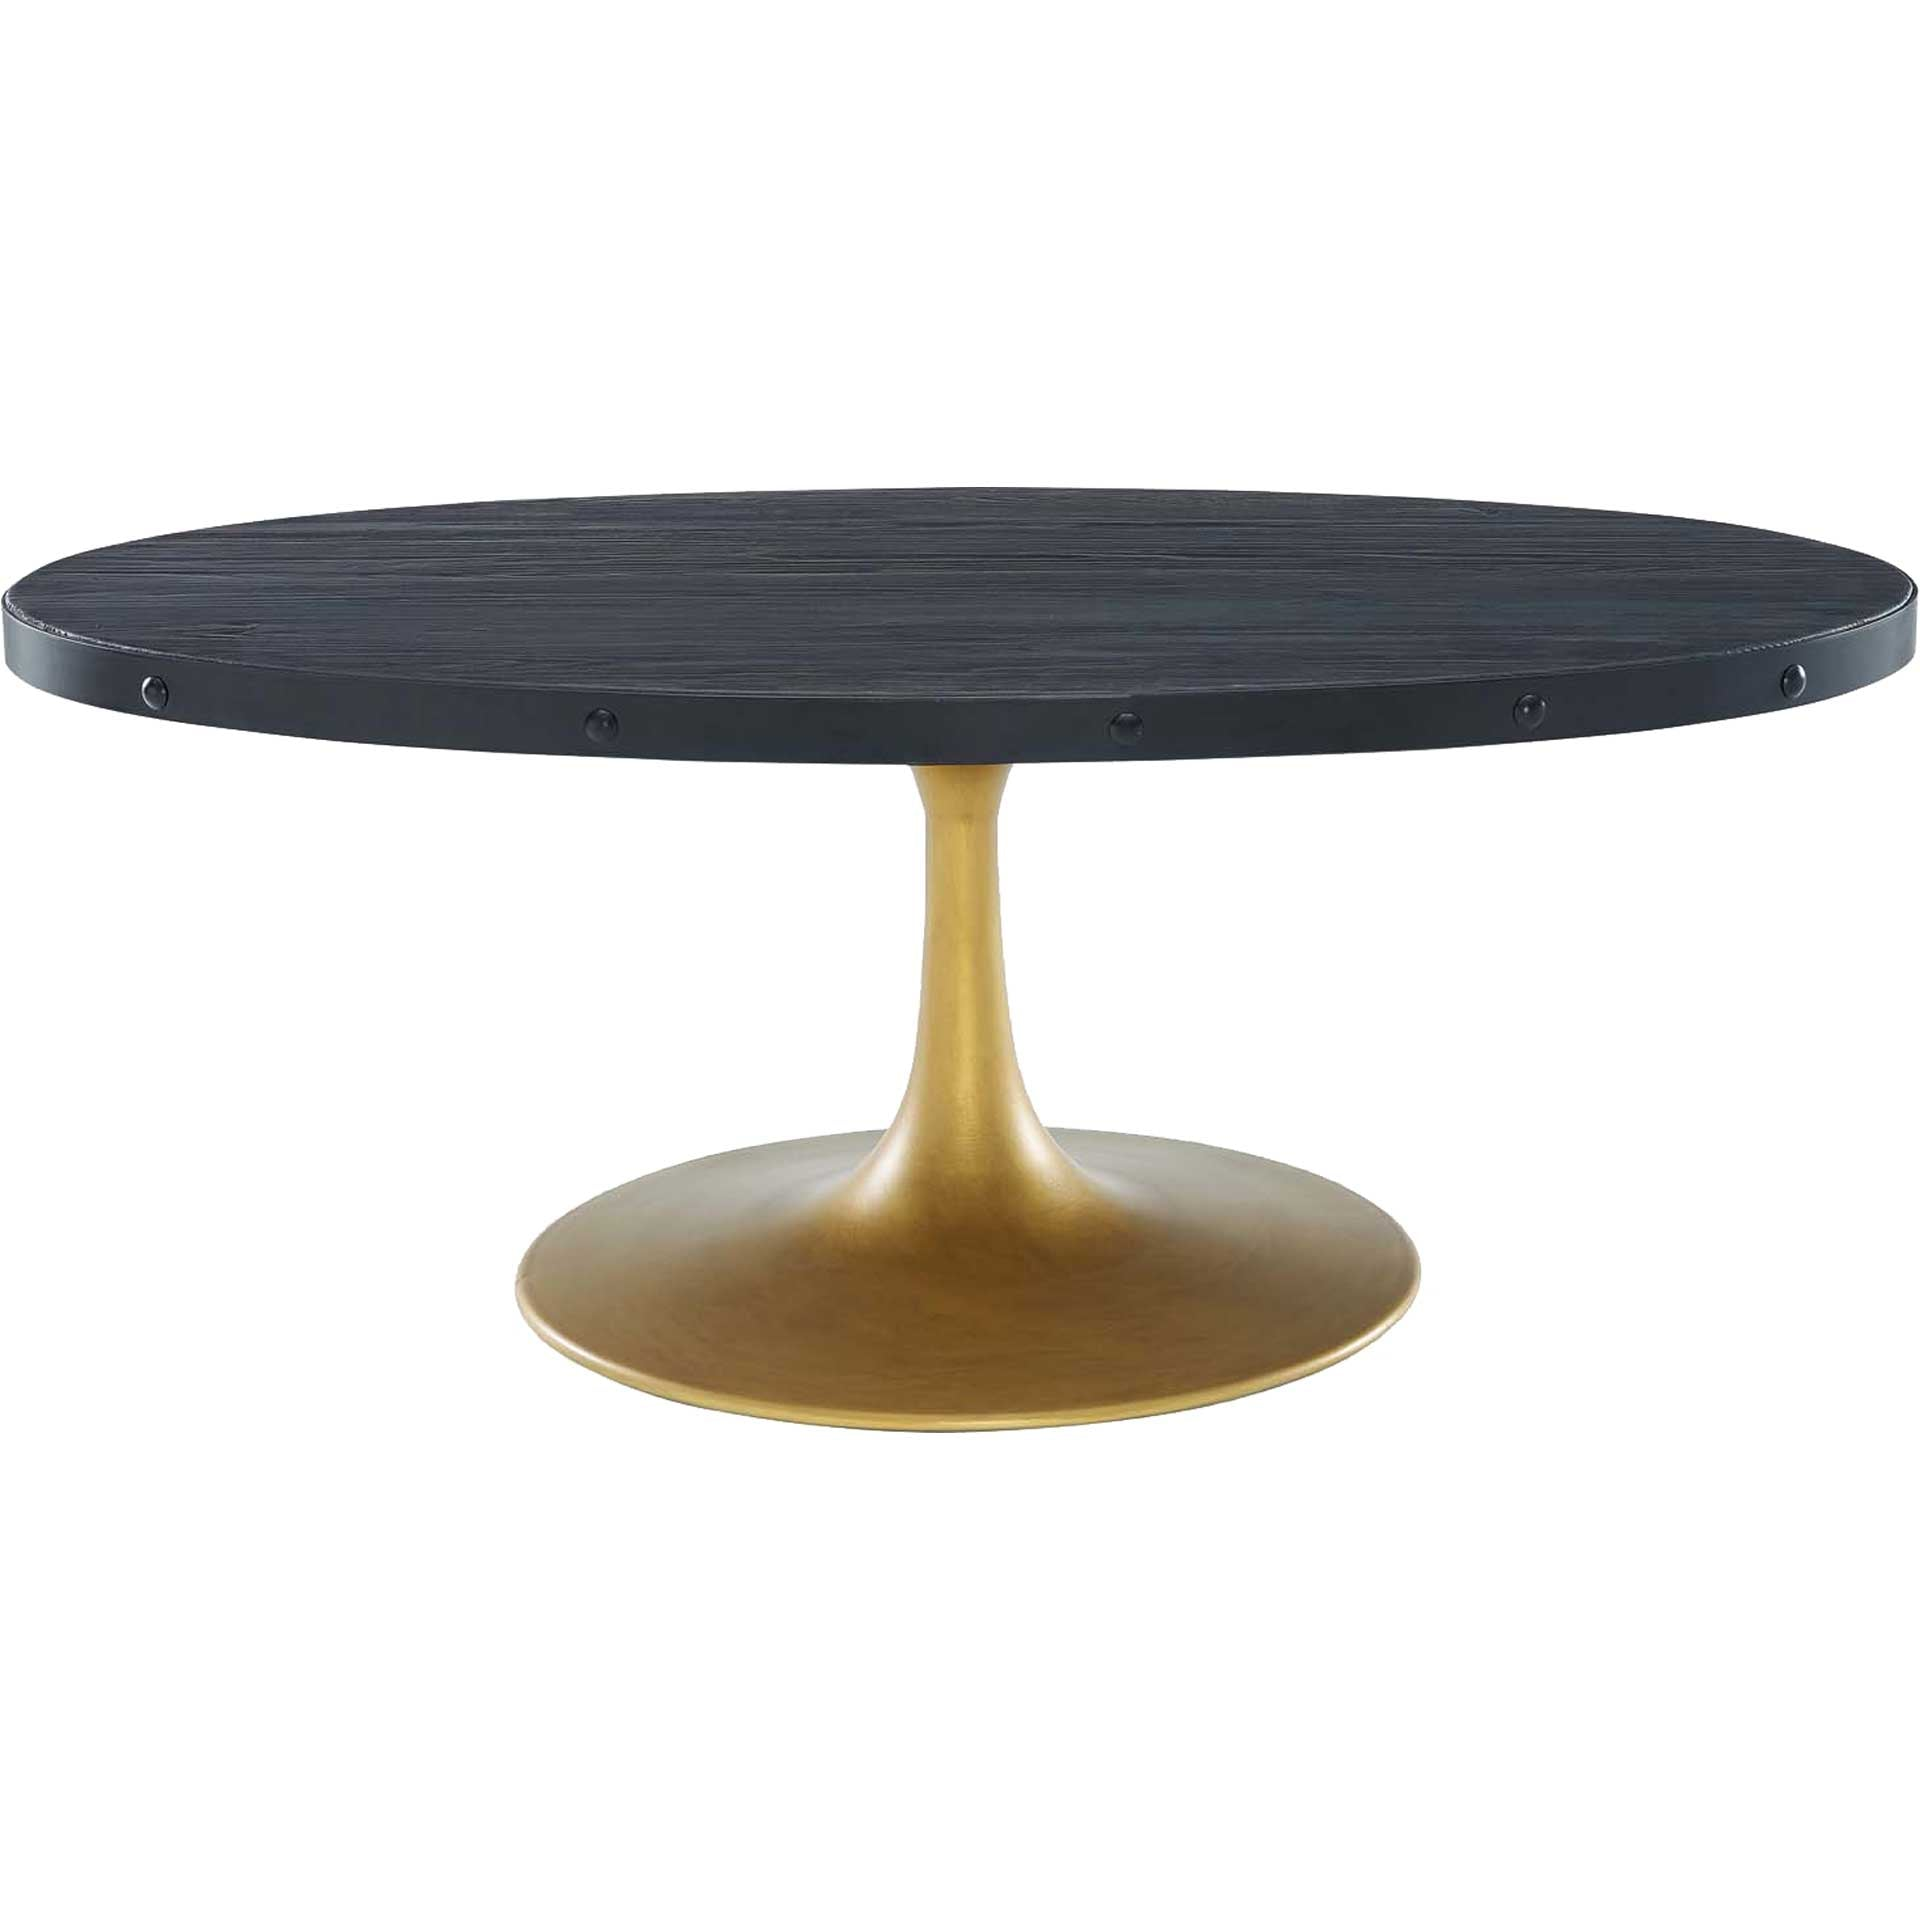 Druid Wood Top Coffee Table Black/Gold